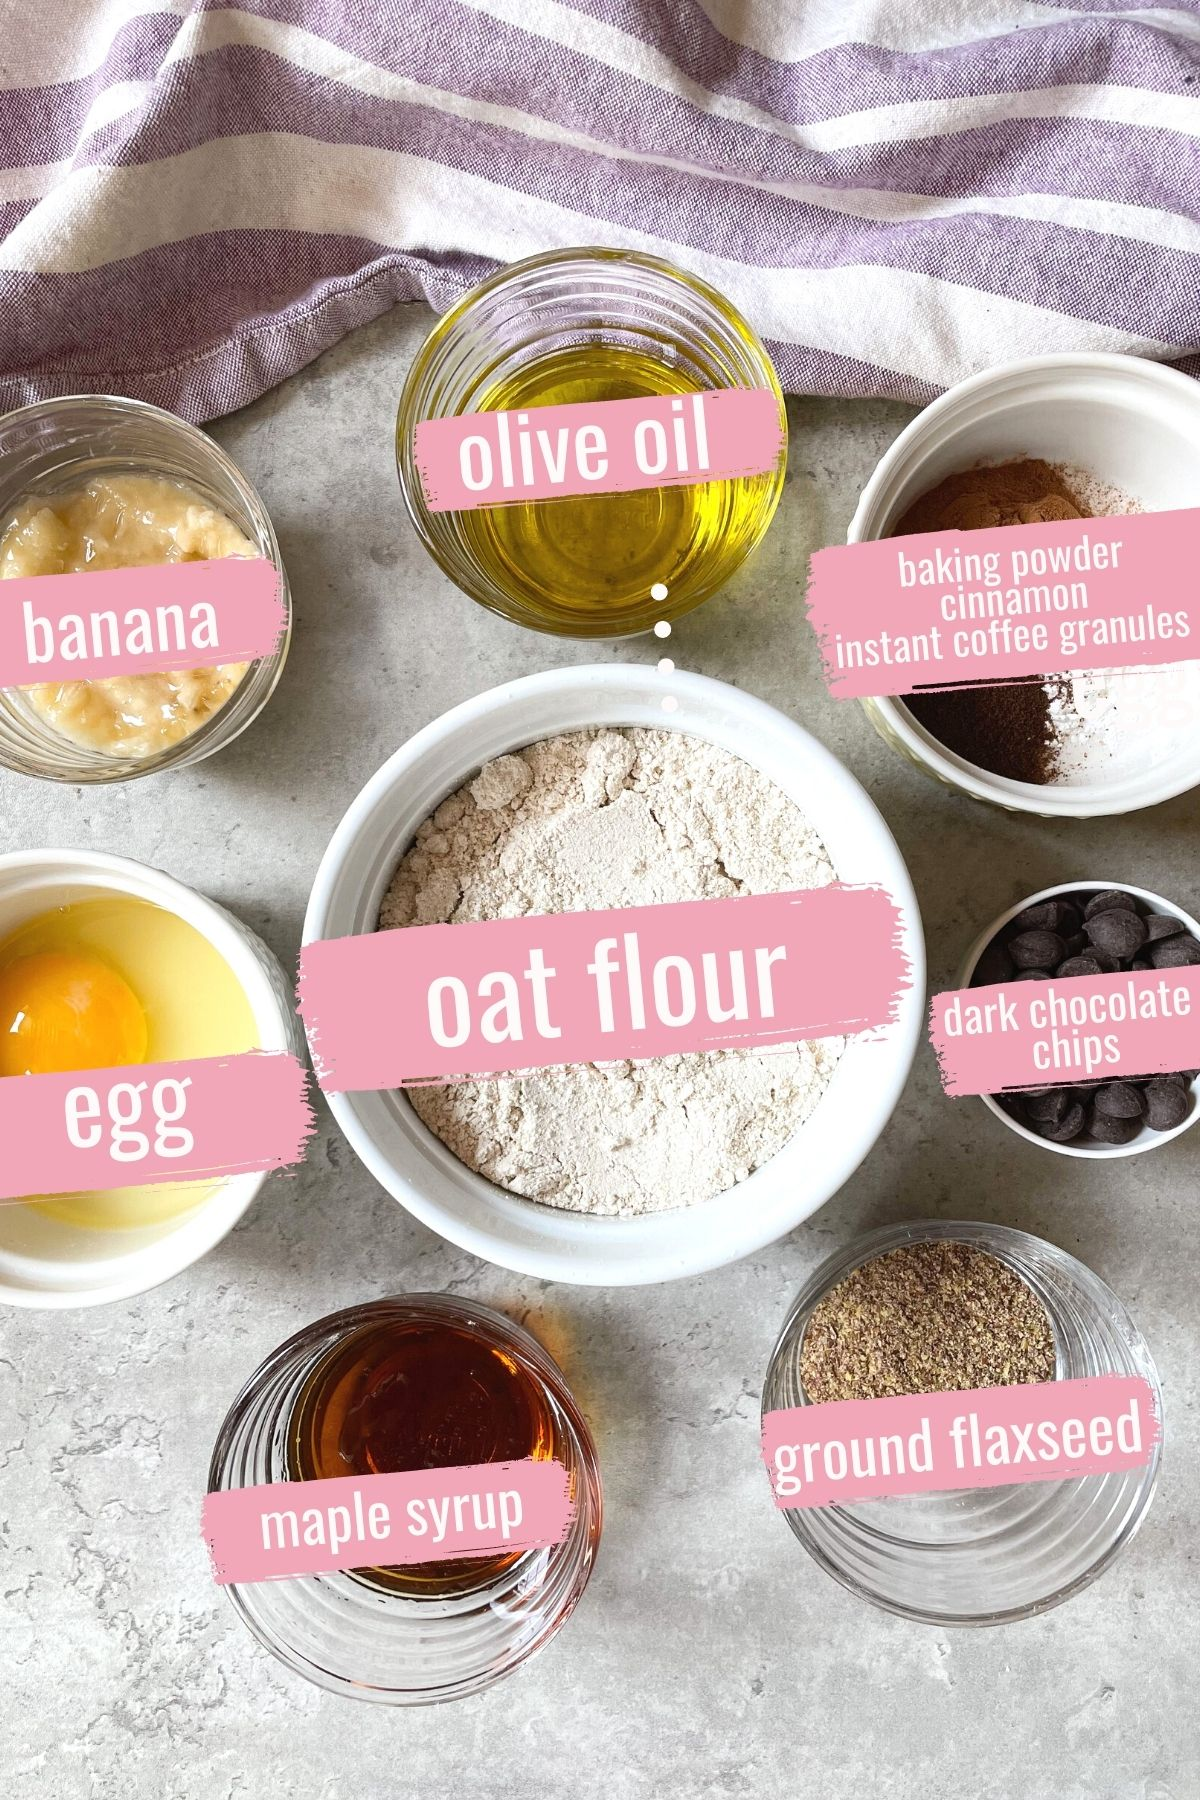 ingredients for oat flour muffins